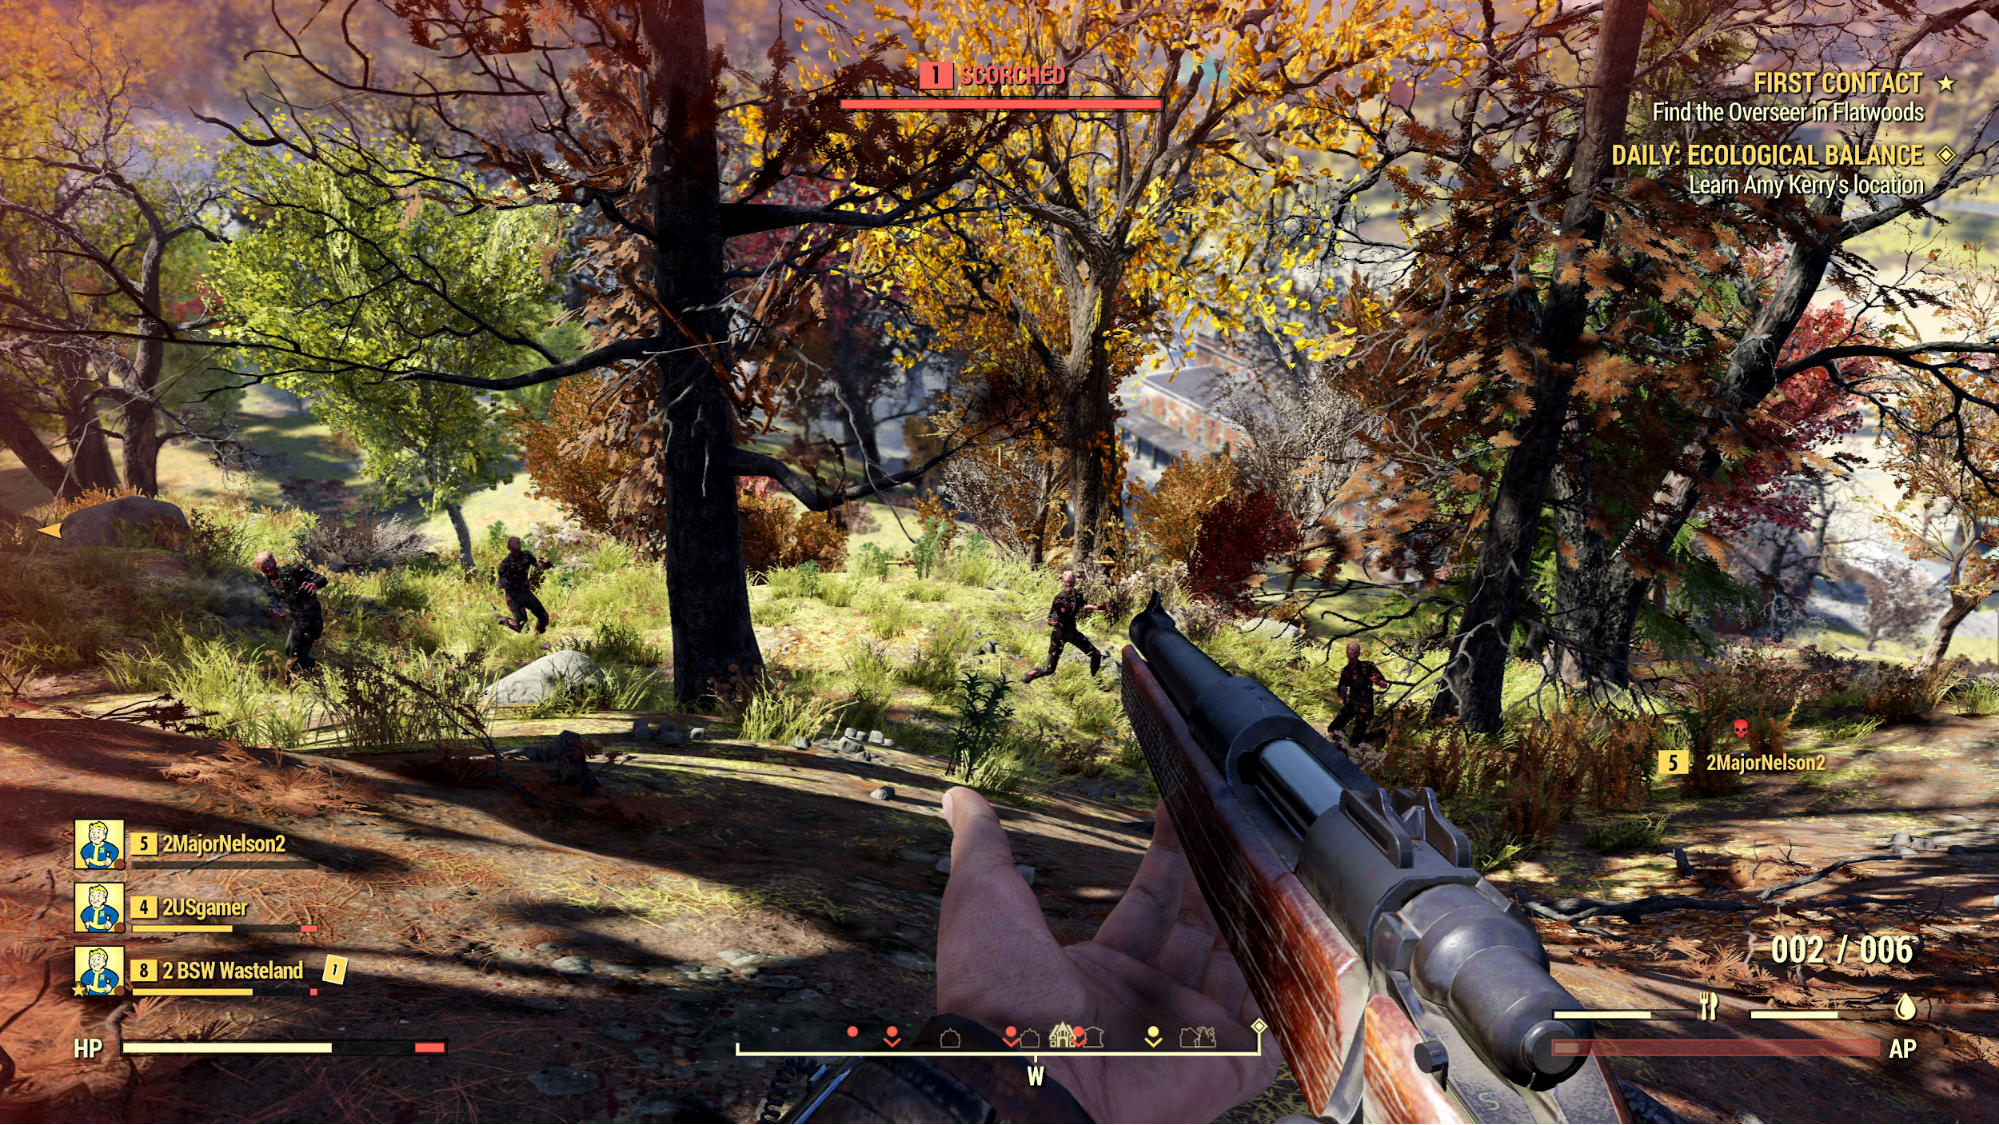 I Played Three Hours of 'Fallout 76' and I Can't Stop Thinking About